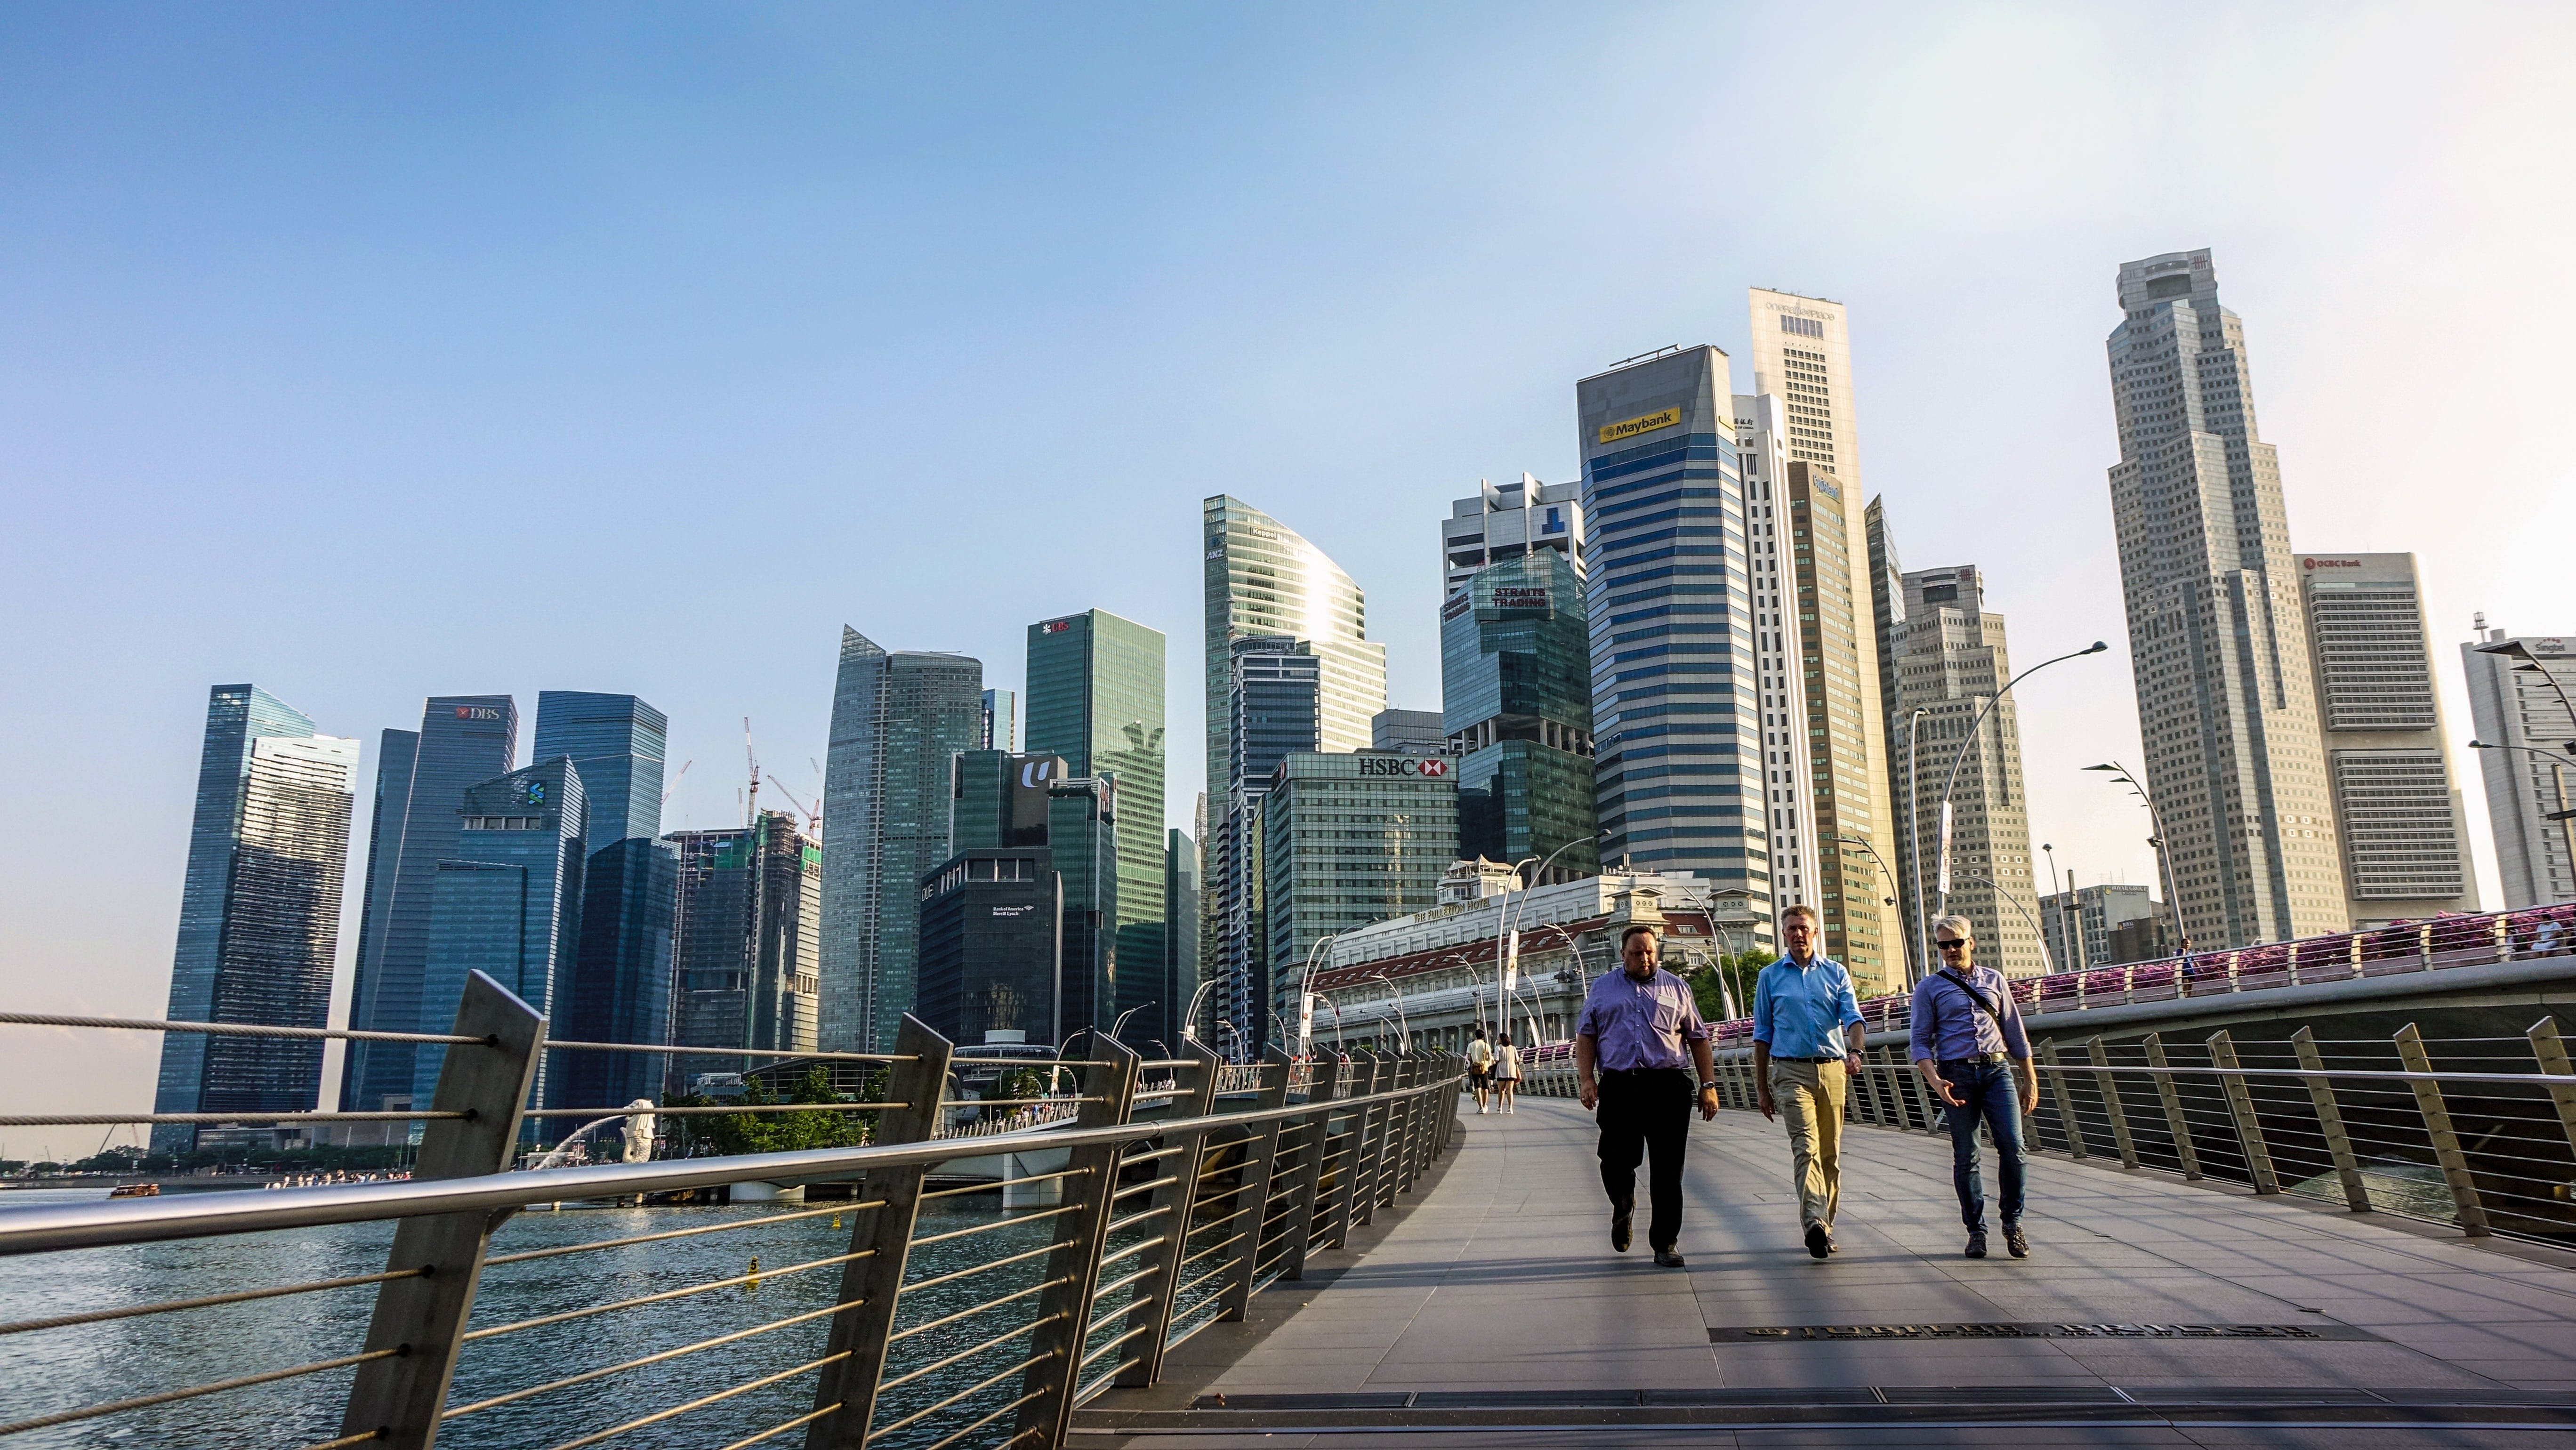 Three Men Walking on Bridge in Front of High Rise Buildings at Daytime